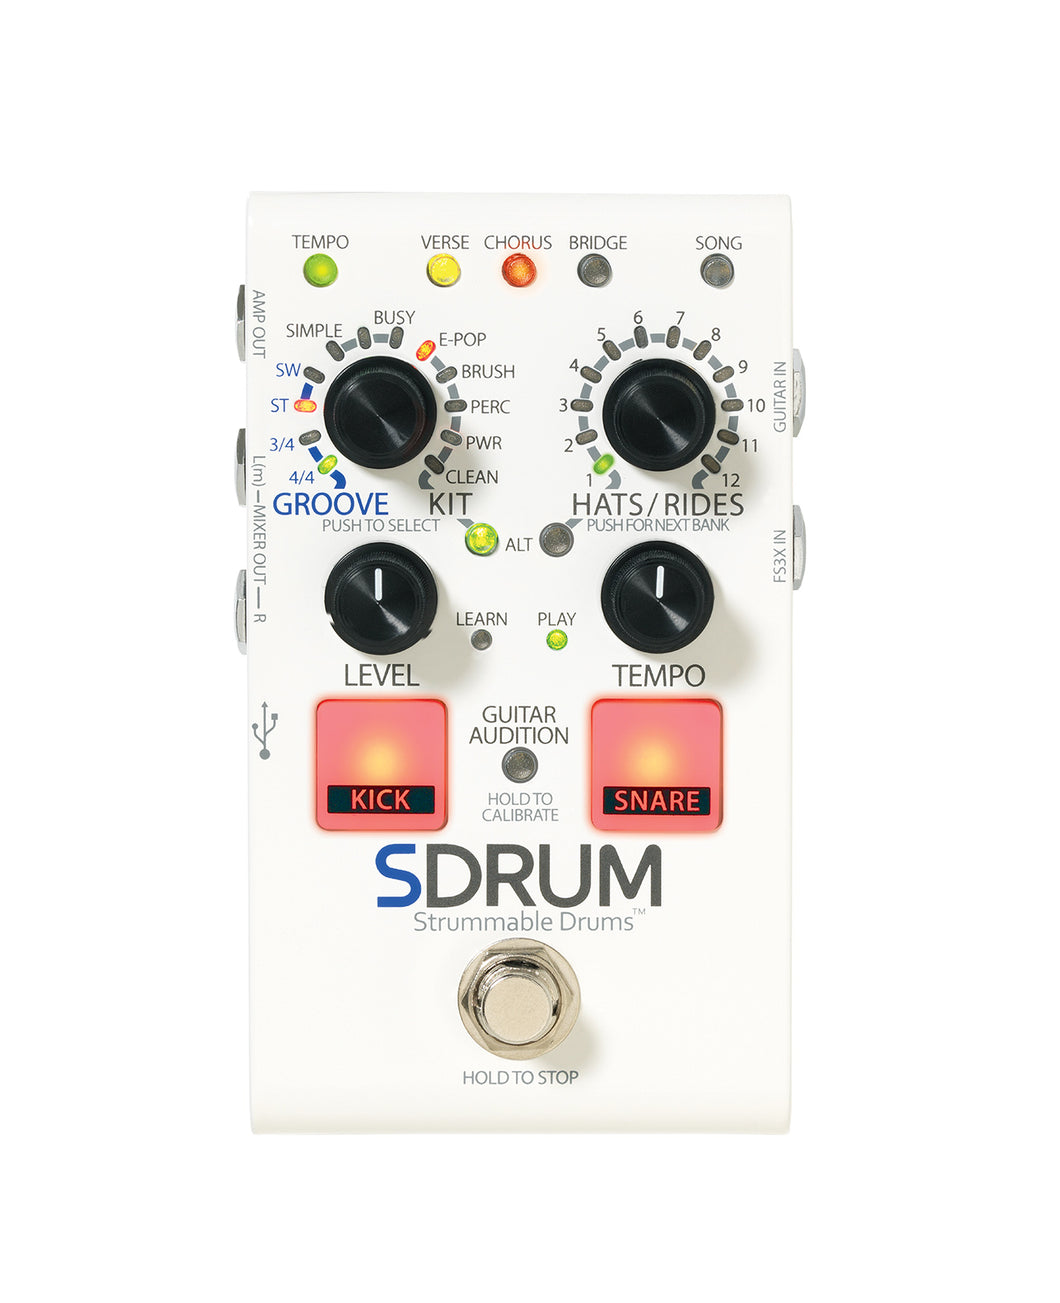 Pedal - Digitech SDRUM Strummable Drum Pedal